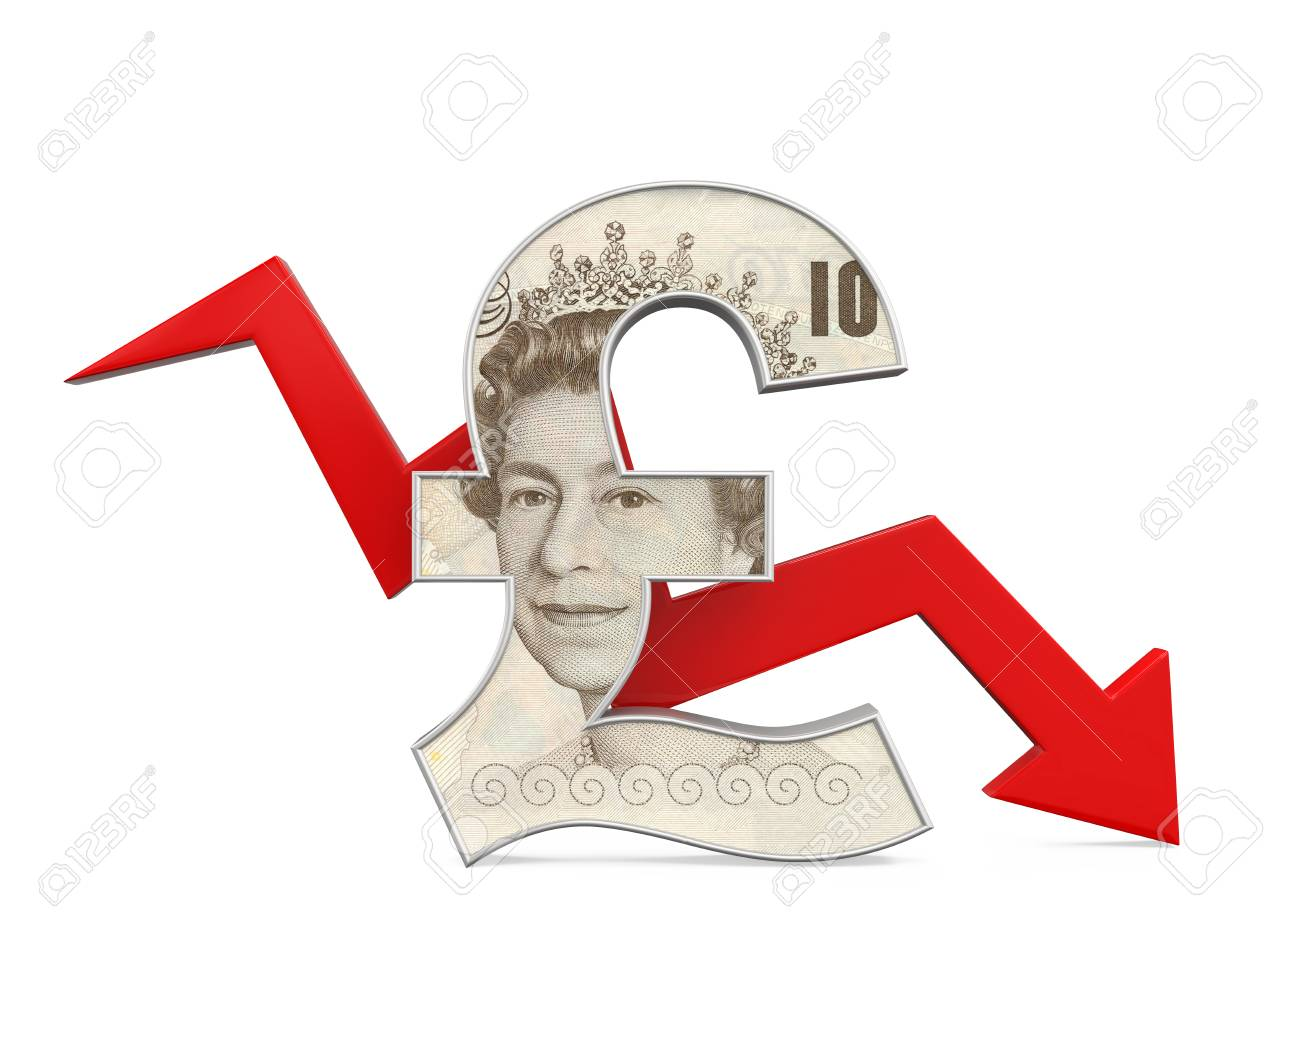 Great britain pound symbol and red arrow stock photo picture and great britain pound symbol and red arrow stock photo 71098512 biocorpaavc Images